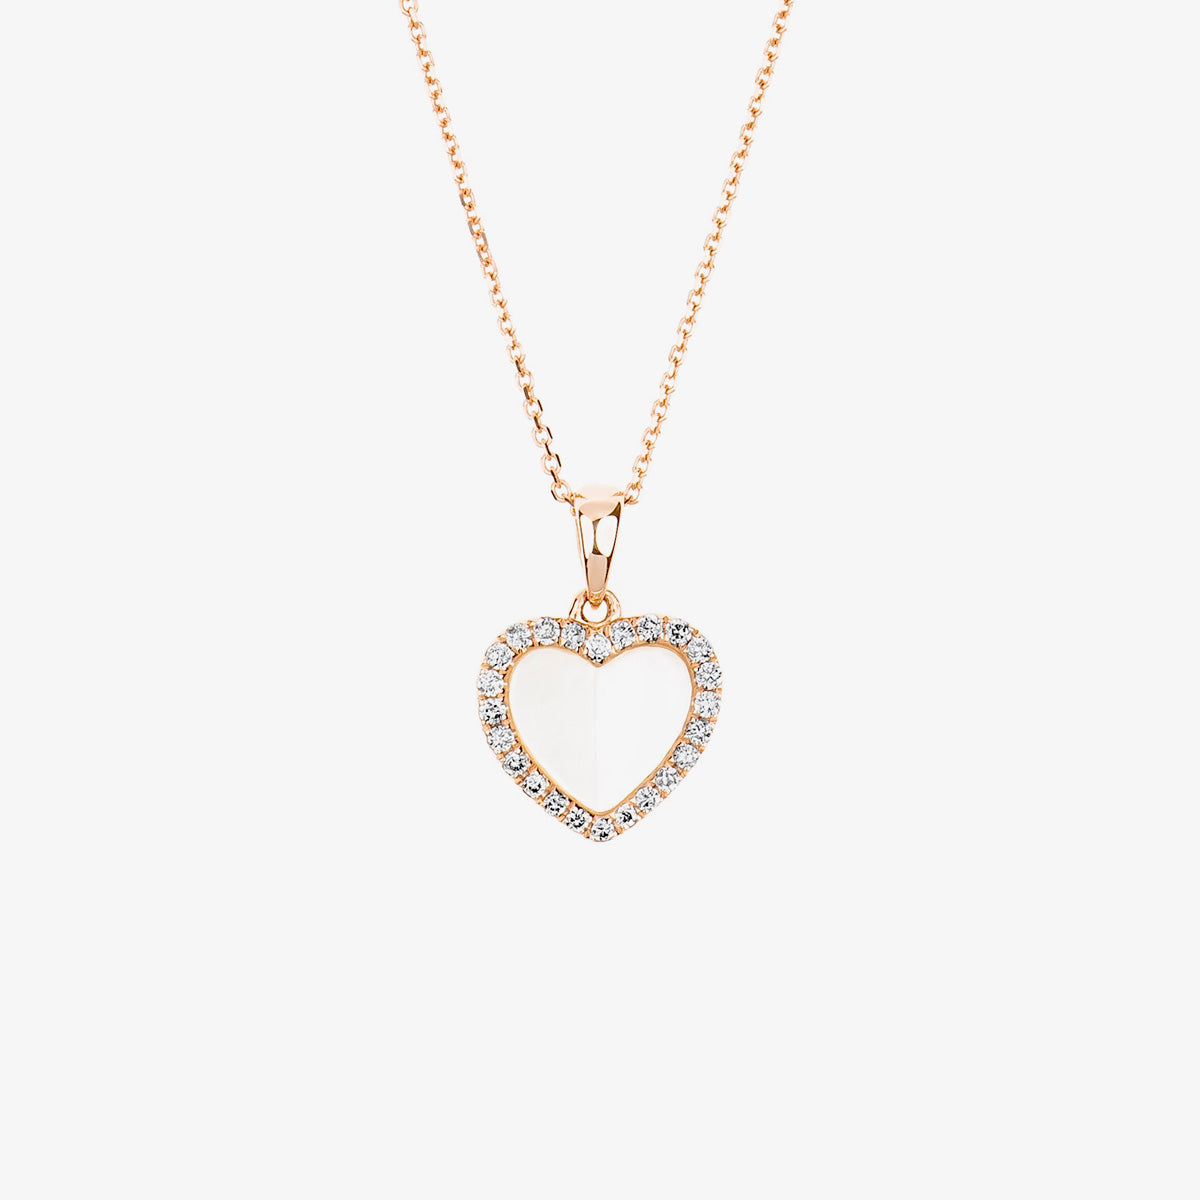 Laila - Pearl And Diamond Heart Pendant Necklace - estellacollection